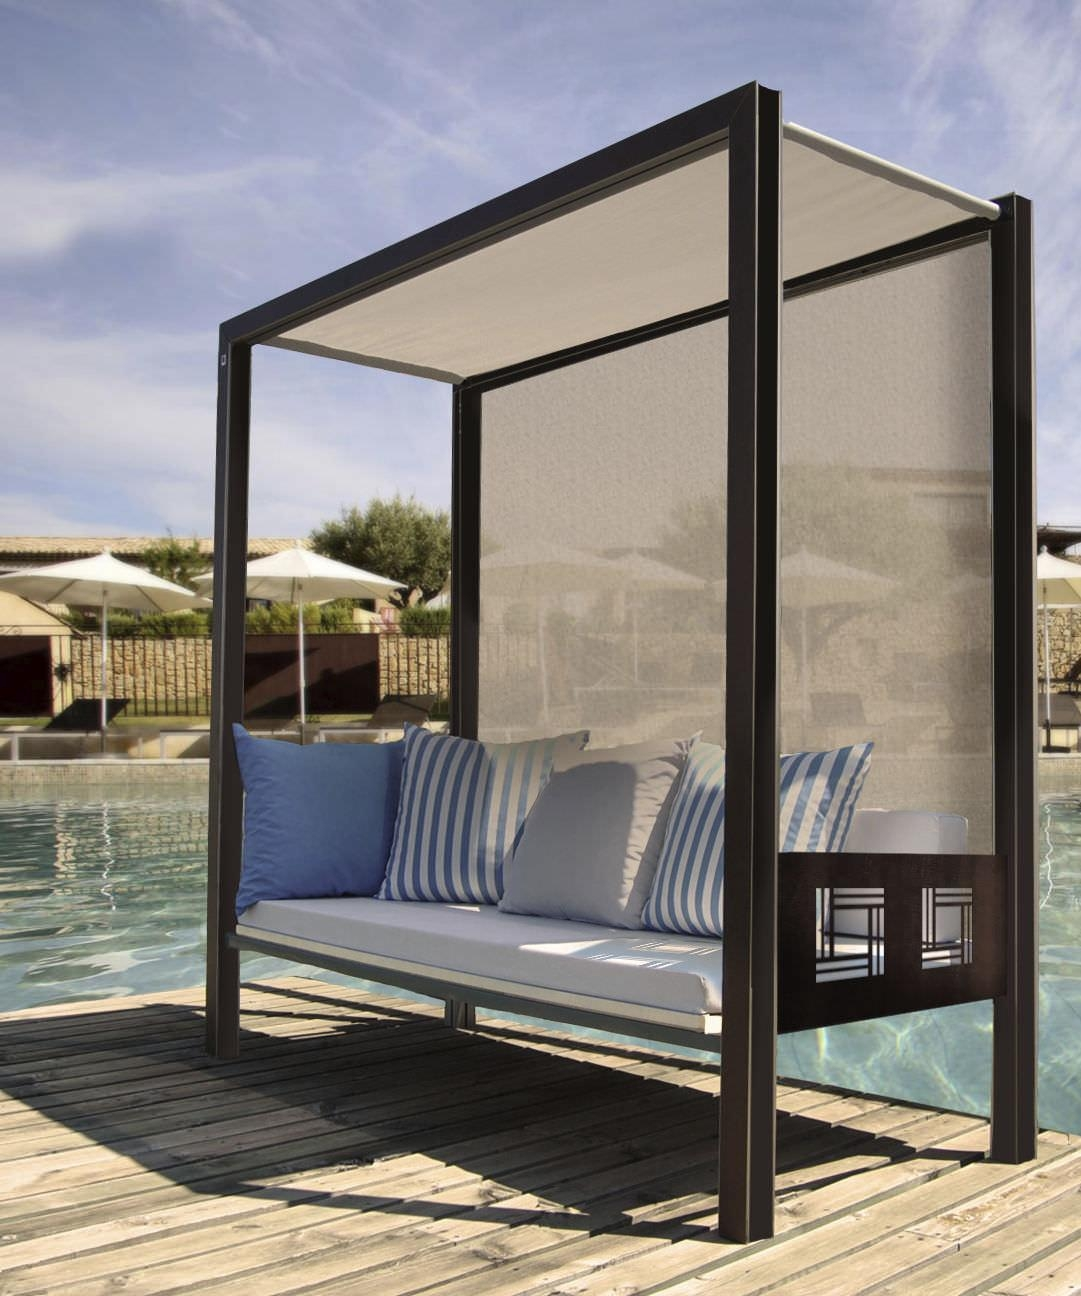 Contemporary Sofa / Garden / Metal / 3 Seater – Polymobyl Pour La Regarding Outdoor Sofas With Canopy (View 7 of 20)